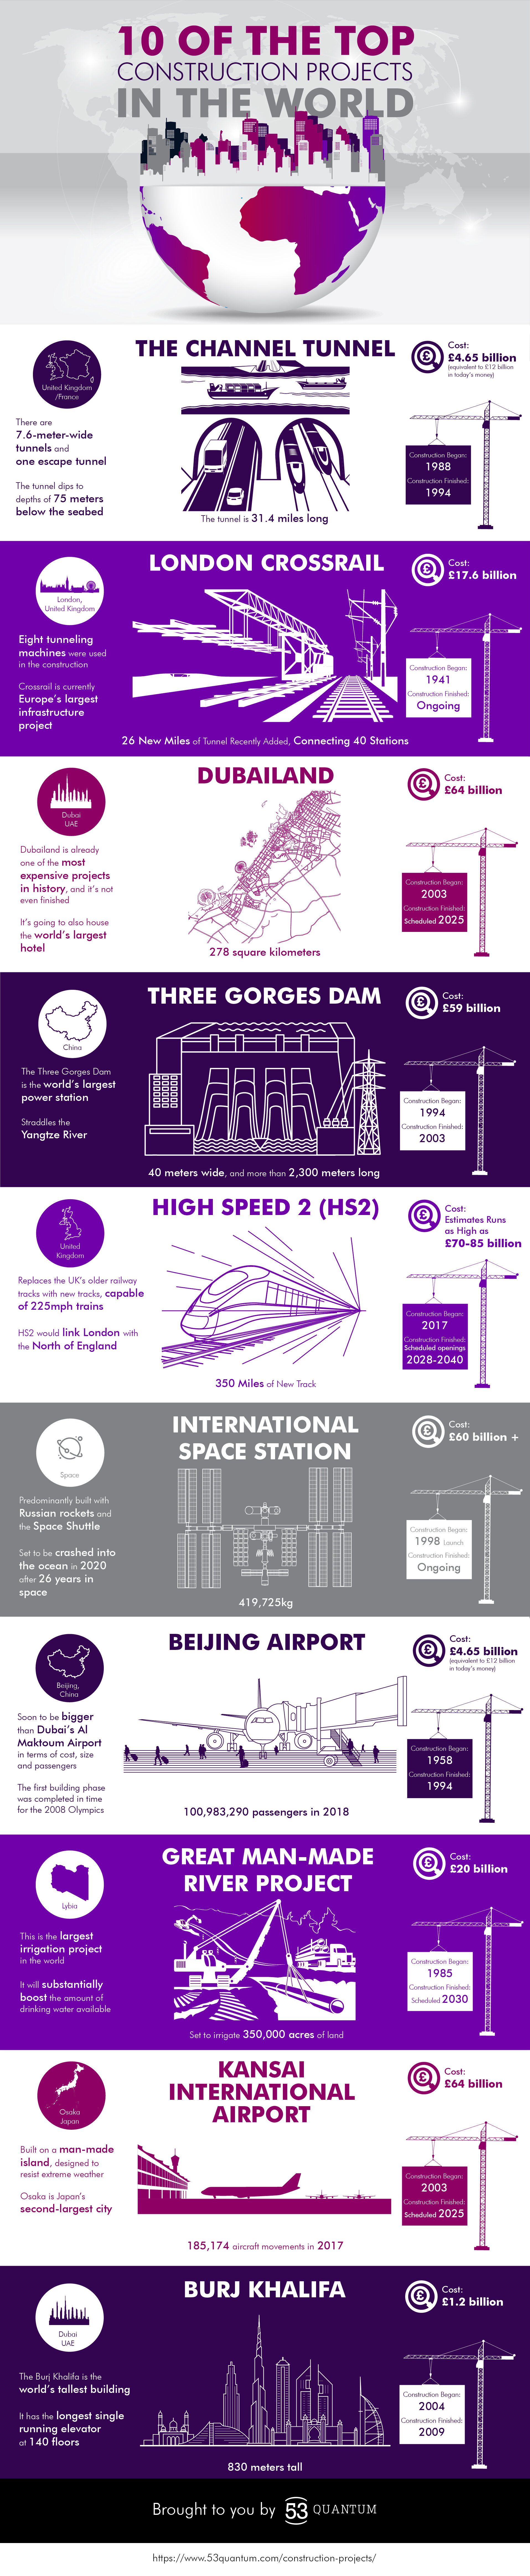 Top Construction Projects in the World infographic